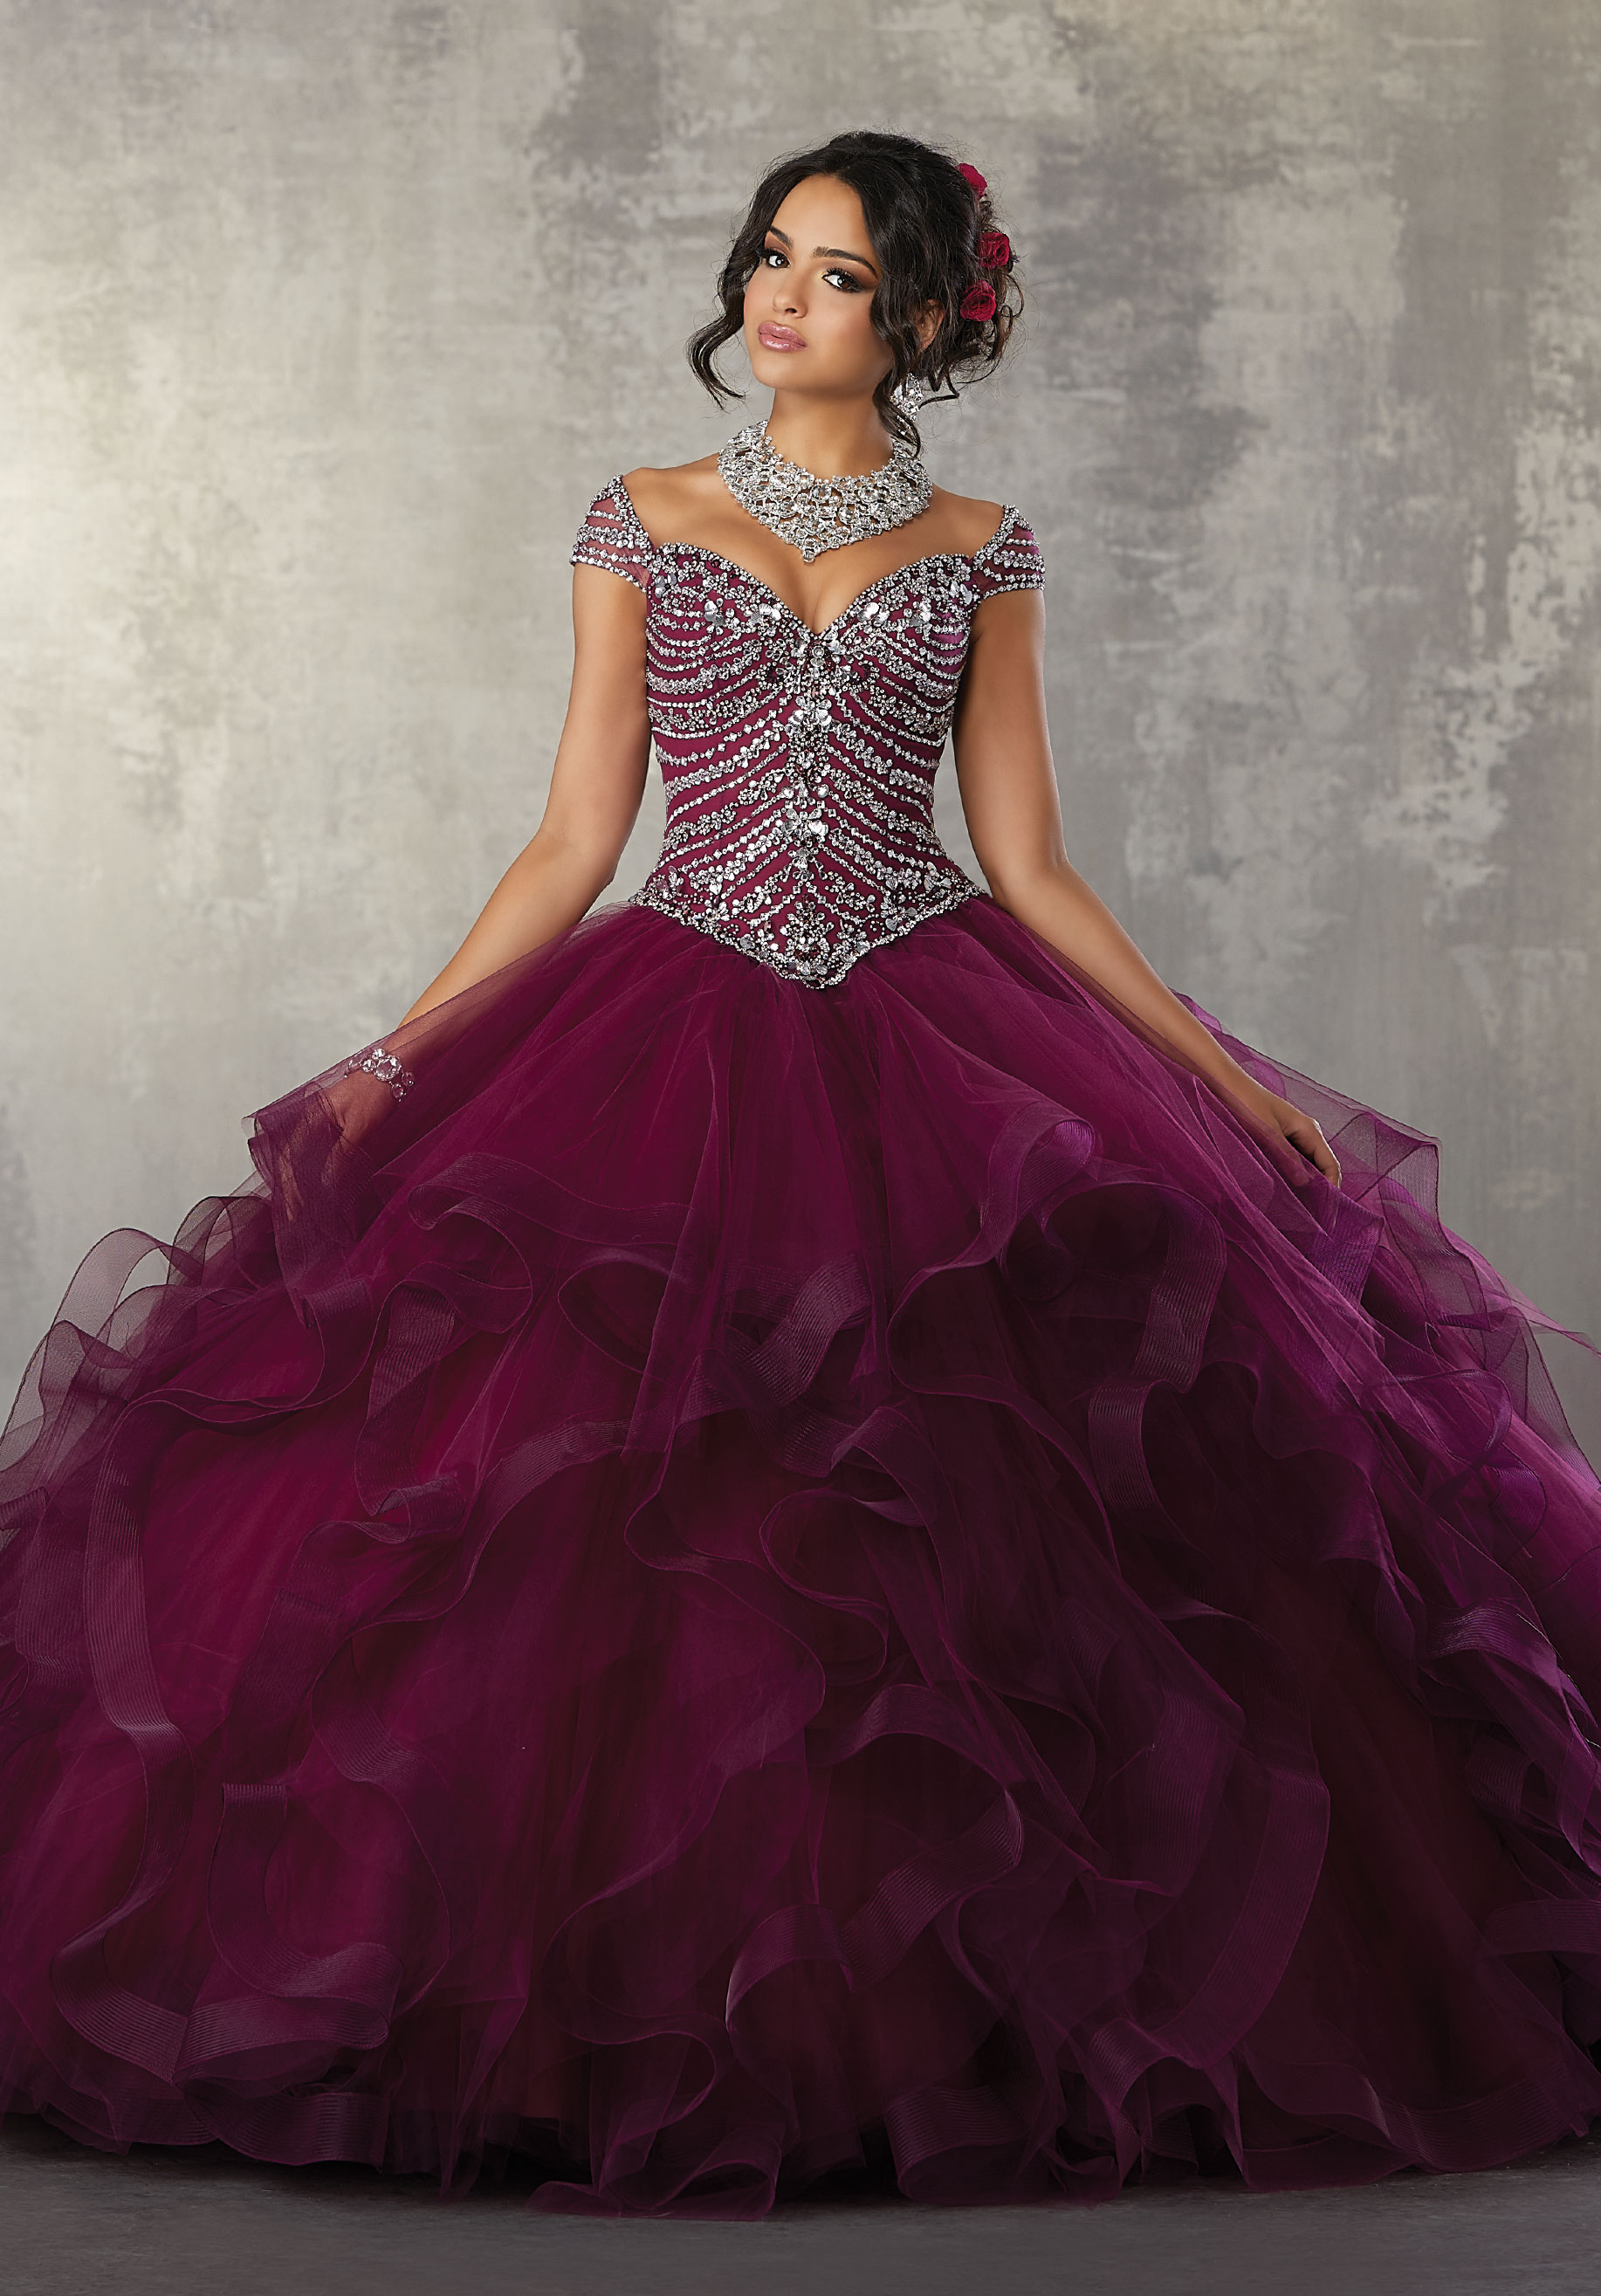 b0b379bd0ce 26848 Quinceañera Collection Quinceanera Dresses Dresses By Russo